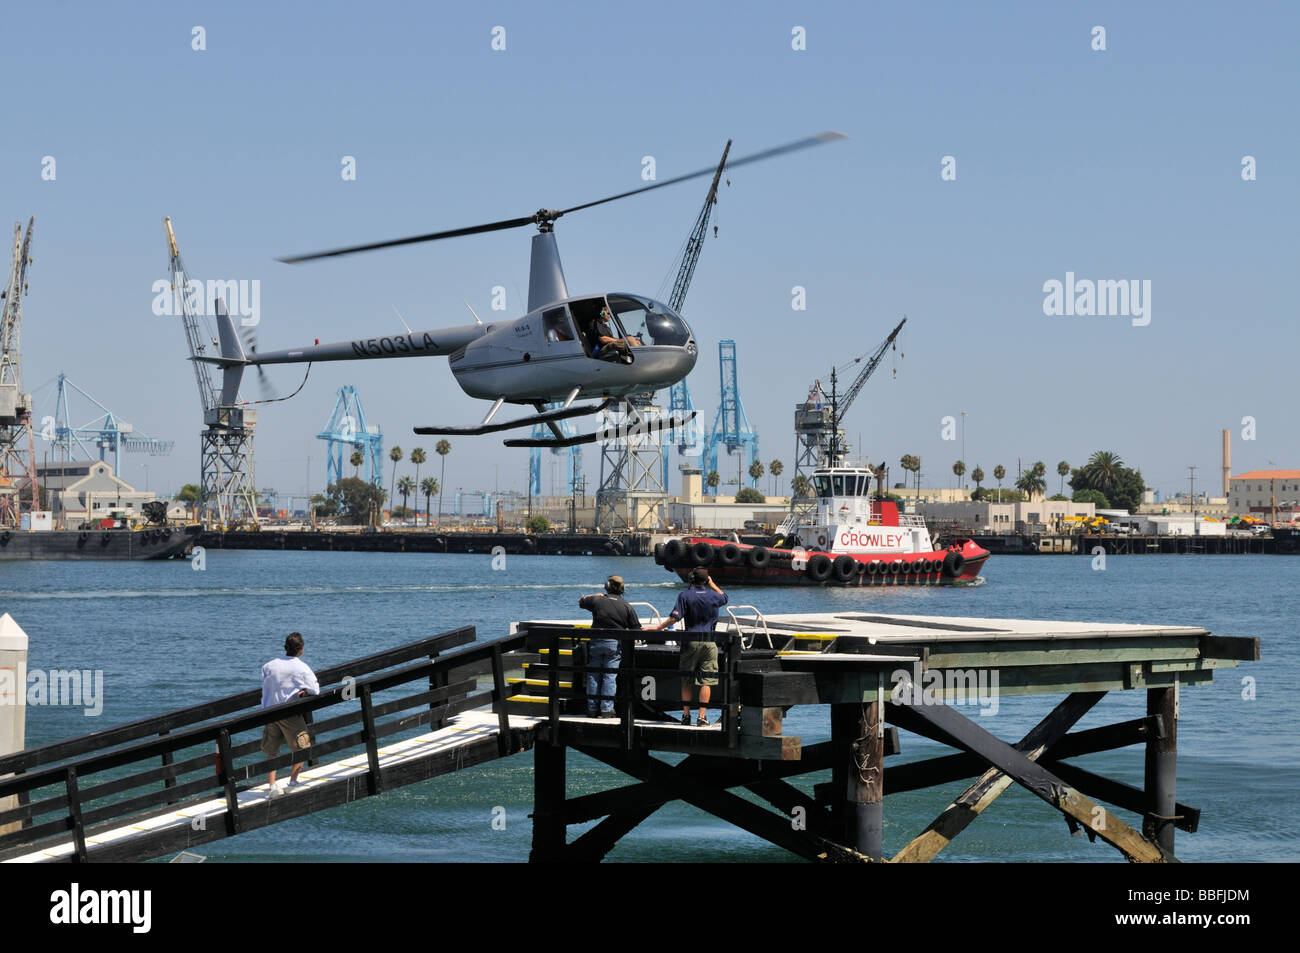 Small helicopter type Robinson R22, a two-bladed, single-engine light utility helicopter manufactured by Robinson - Stock Image